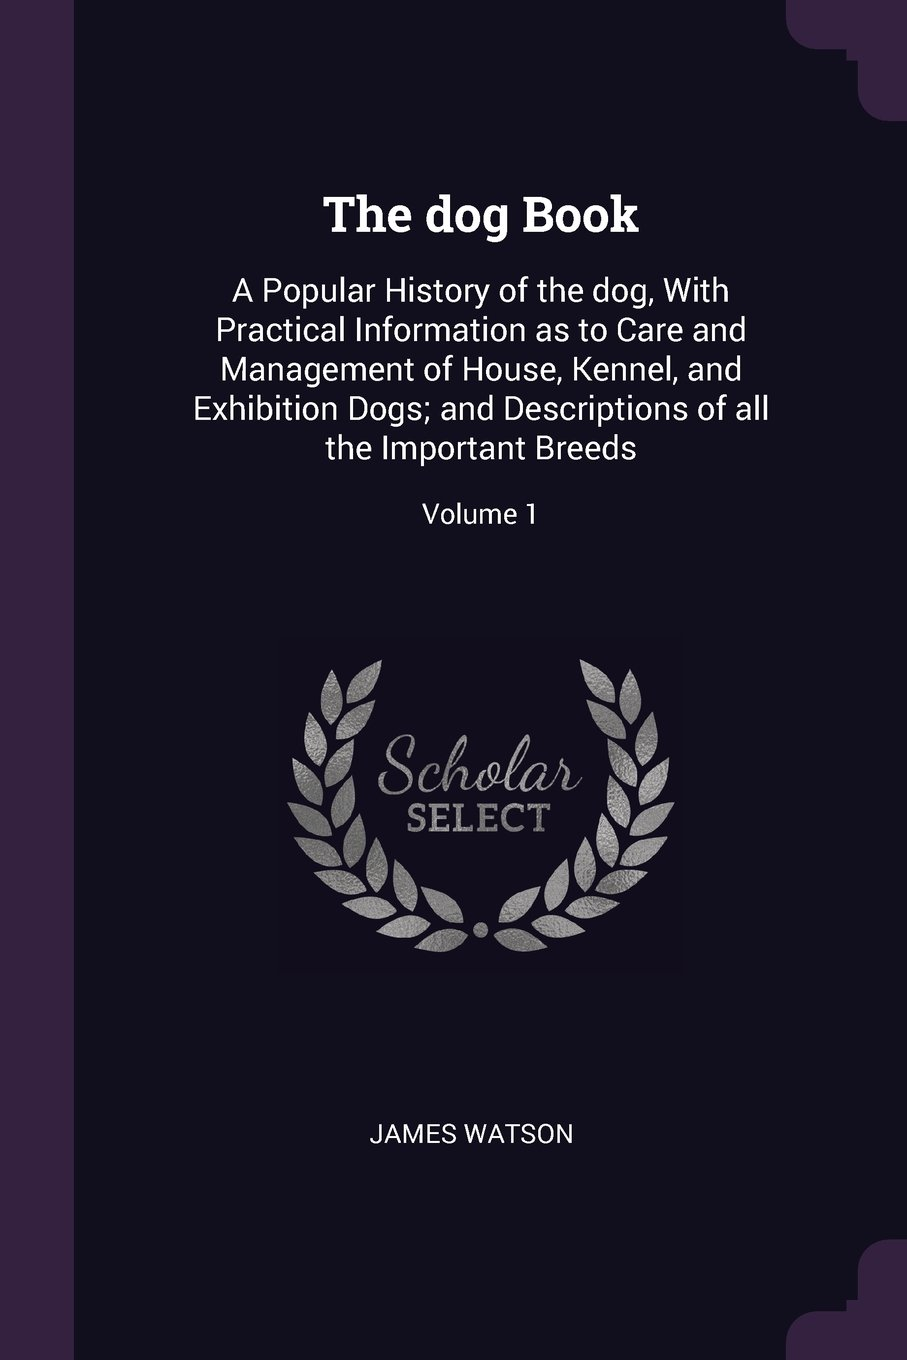 Download The dog Book: A Popular History of the dog, With Practical Information as to Care and Management of House, Kennel, and Exhibition Dogs; and Descriptions of all the Important Breeds; Volume 1 PDF